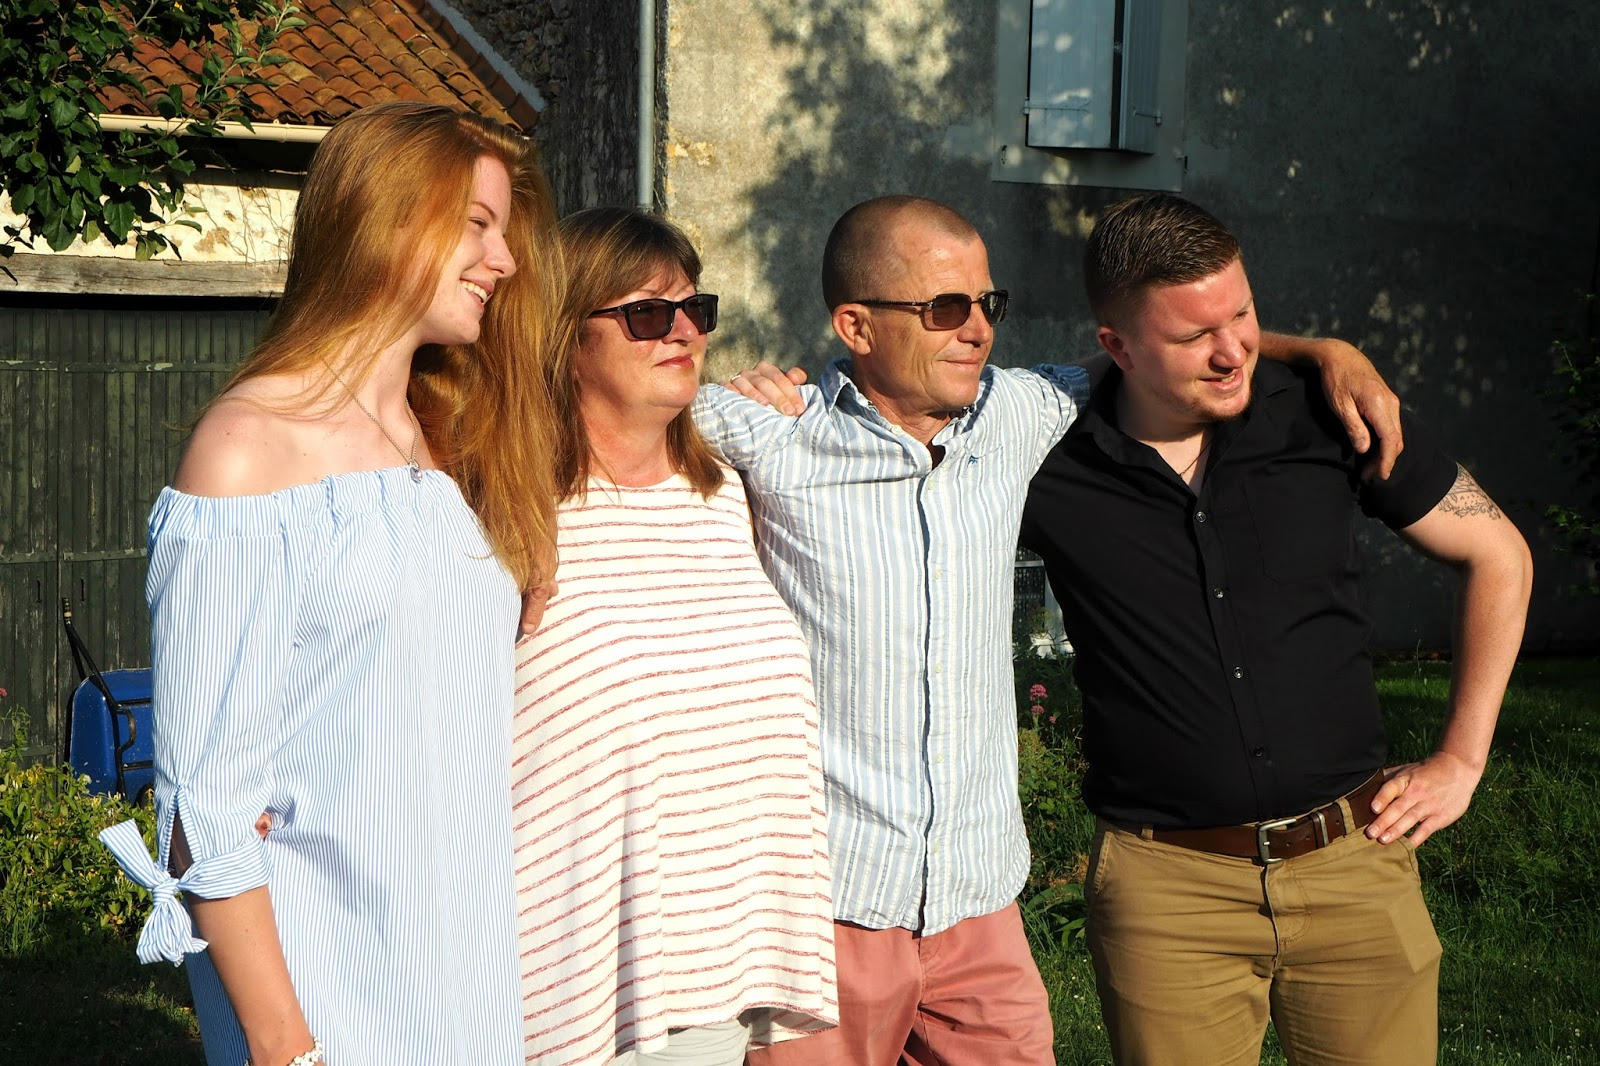 The Derbyshire Family